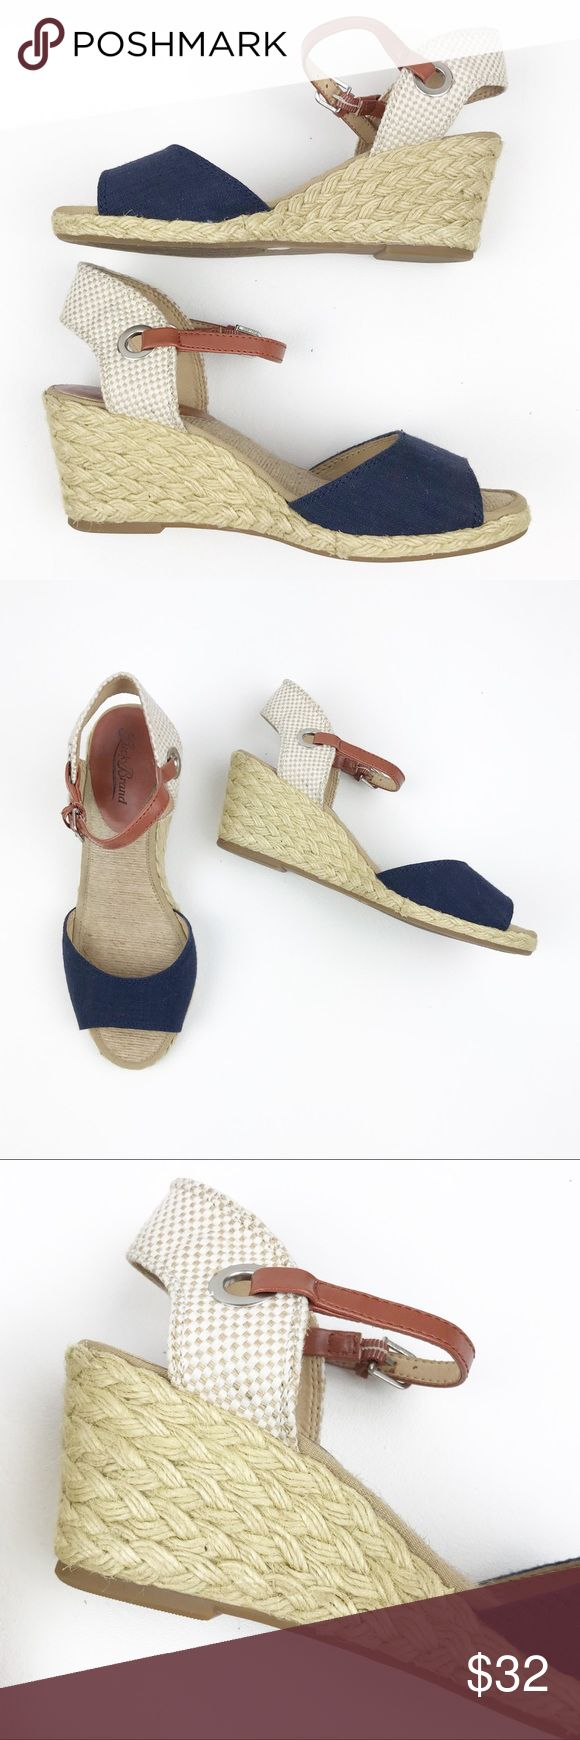 "Lucky Brand Kyndra Navy Espadrille Wedge Sandals 7 Lucky Brand Kyndra Navy Espadrille Wedge Heel Sandals Ankle Strap Womens 7  Lucky Brand ""Kendra"" cork wedges Navy / Brown  Size 7 Insole: 9.5"" Heel: 2.5""  Light wear on inner sole of one shoe - shown in photos. Does not affect wear  Good pre-owned condition Lucky Brand Shoes Espadrilles"